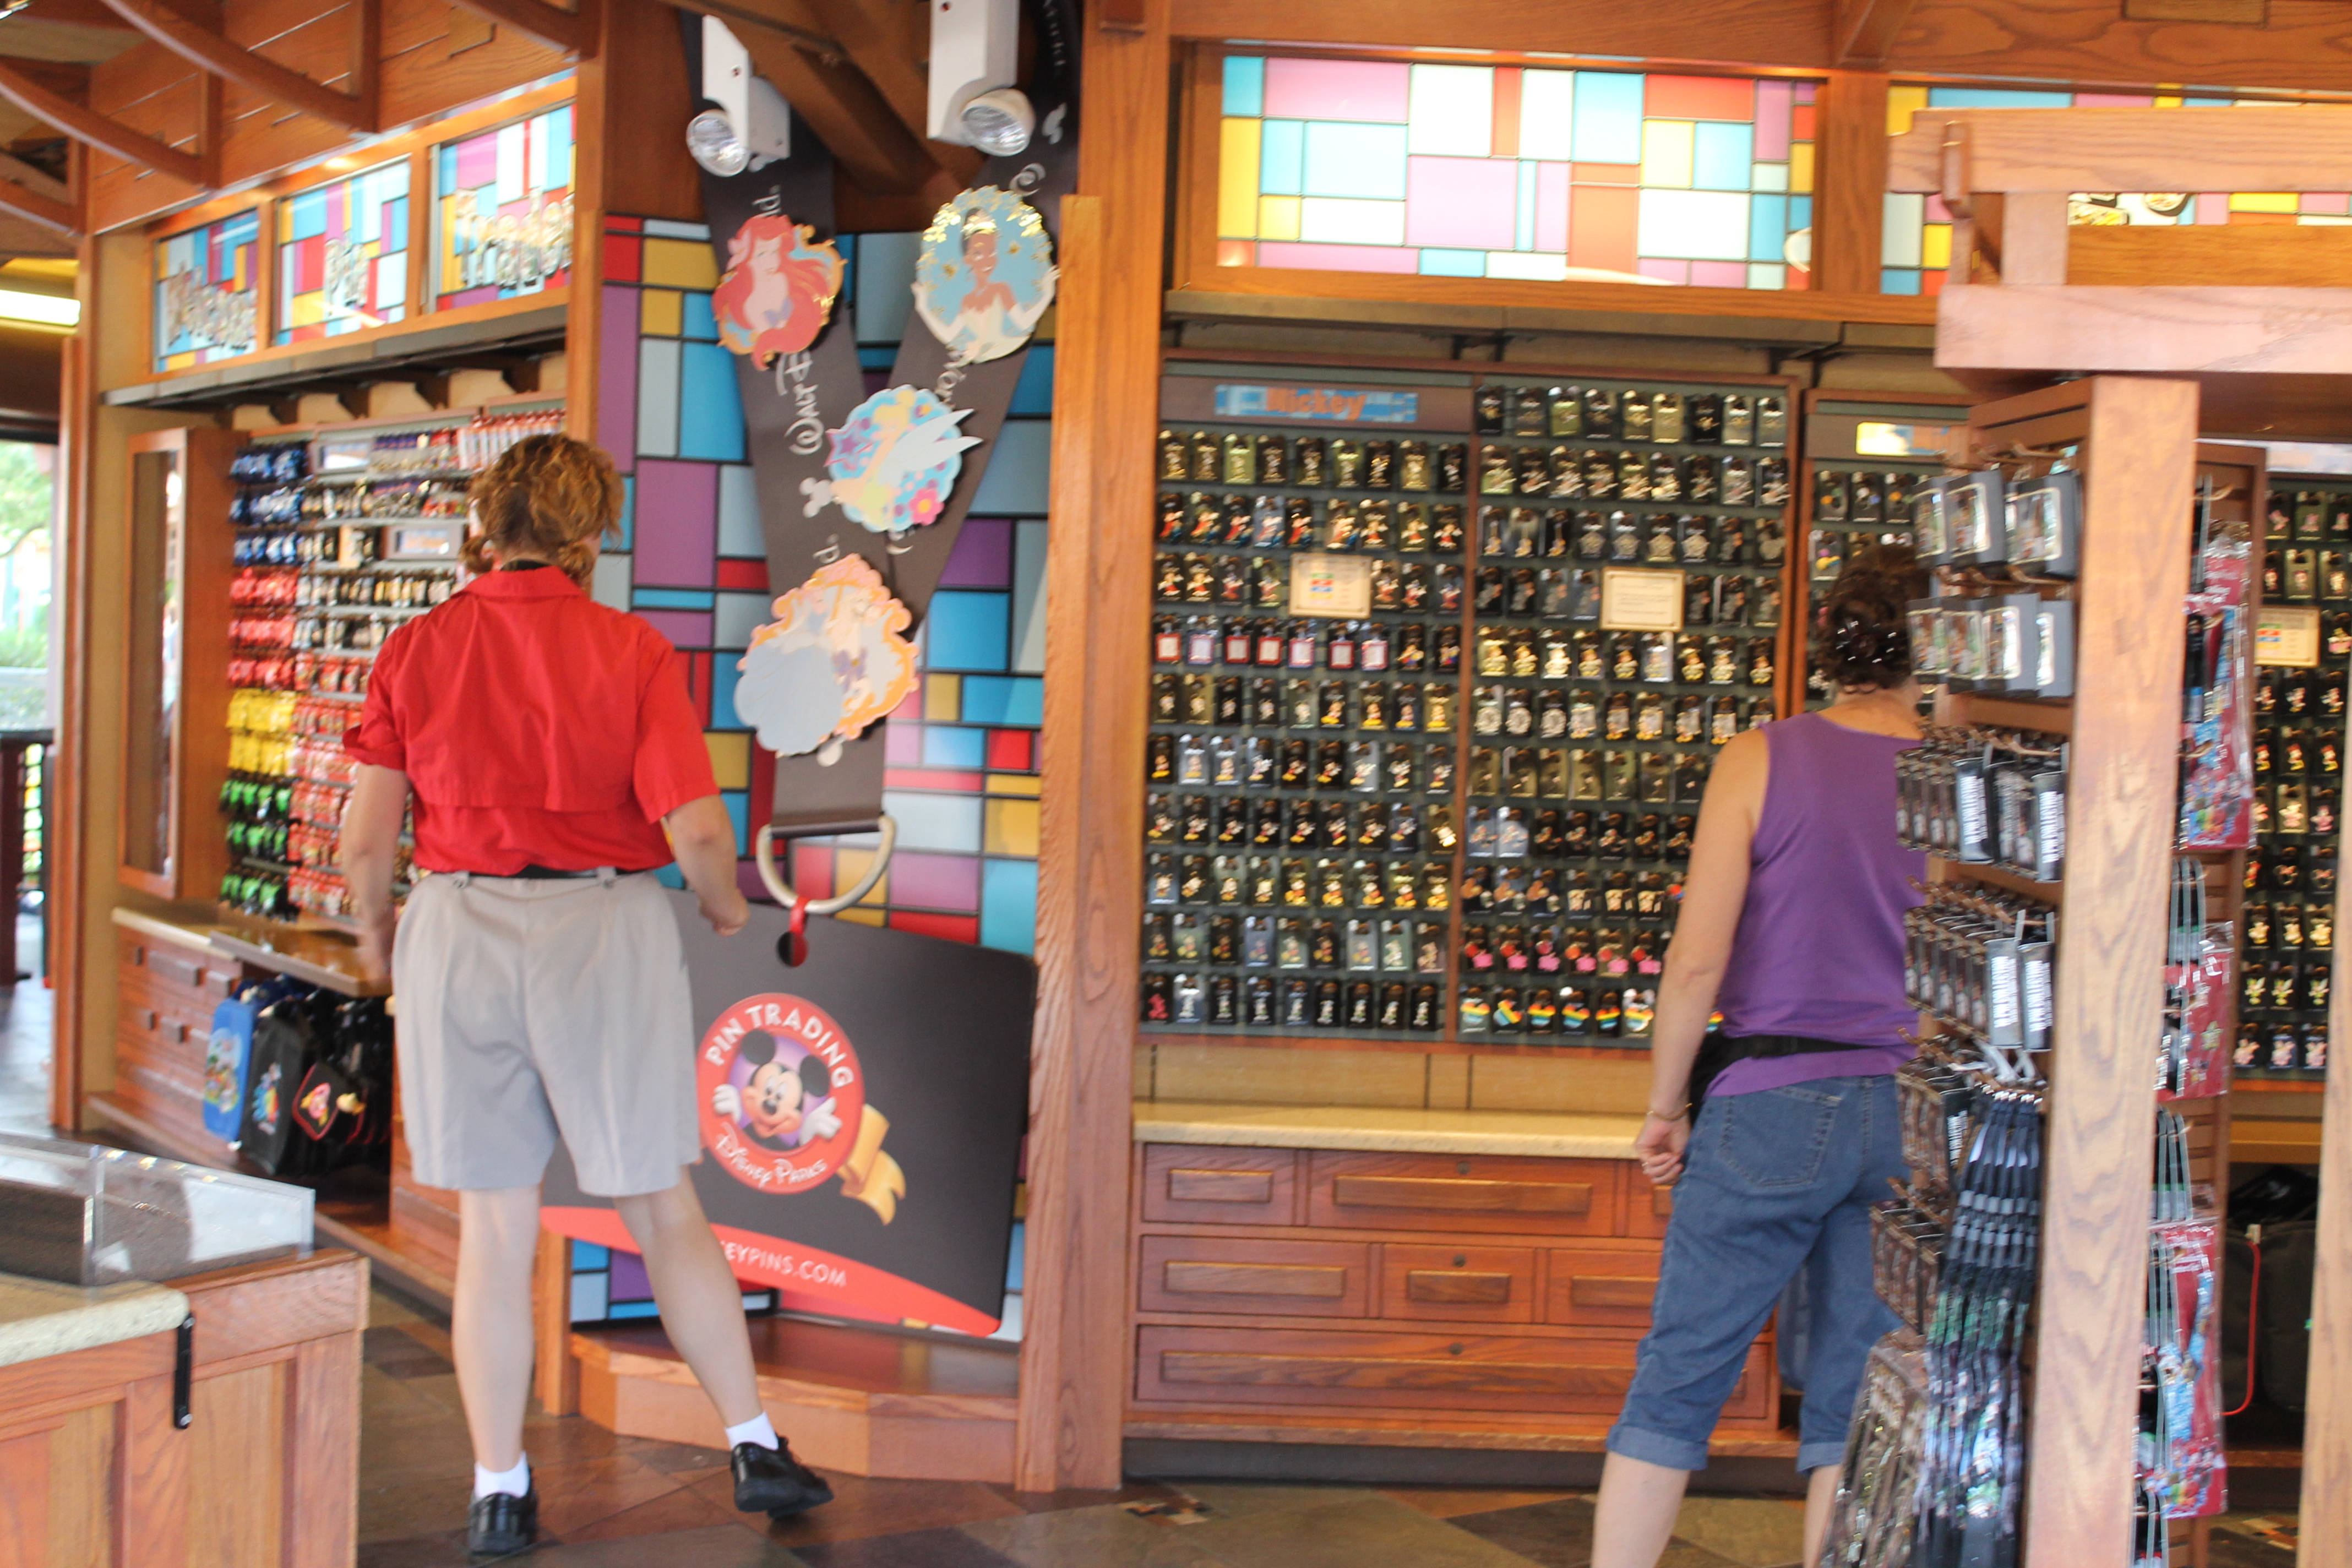 About Disney Pins and the Disney Pin Trading Community ...